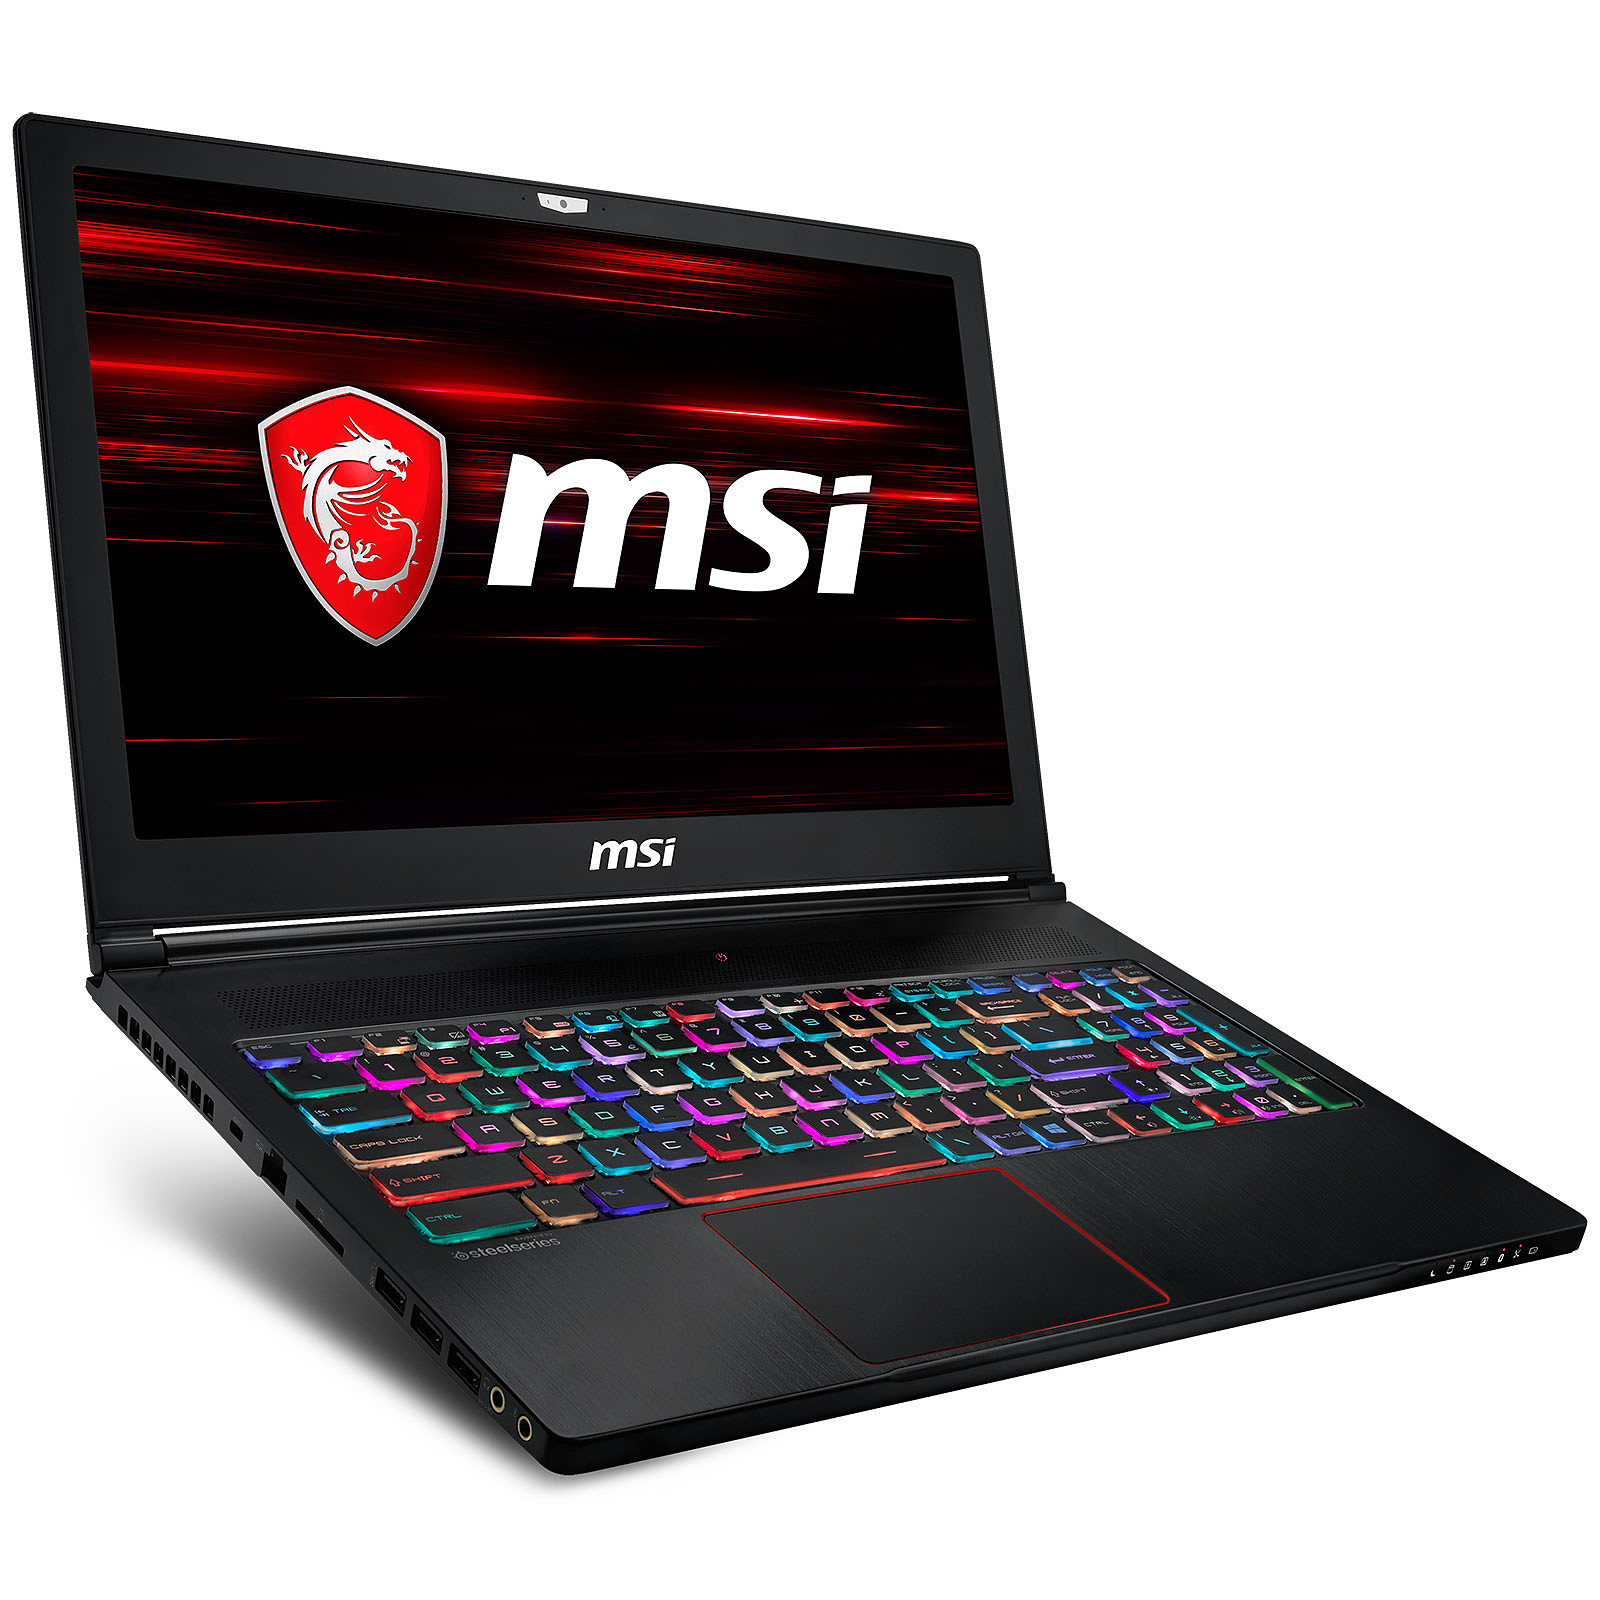 MSI GS63 8RD-016FR Stealth